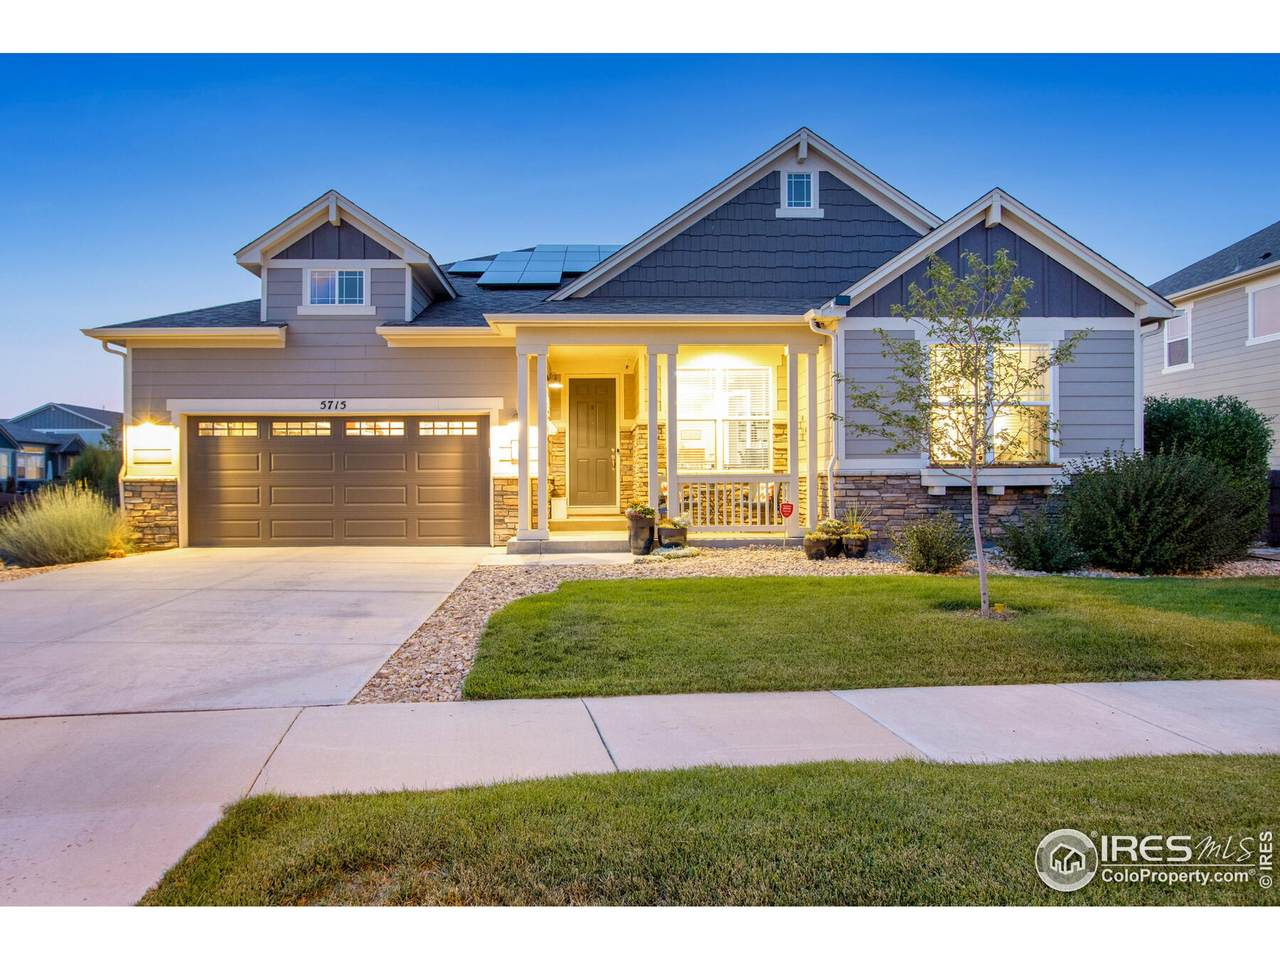 5715 Crossview Dr - Photo 1